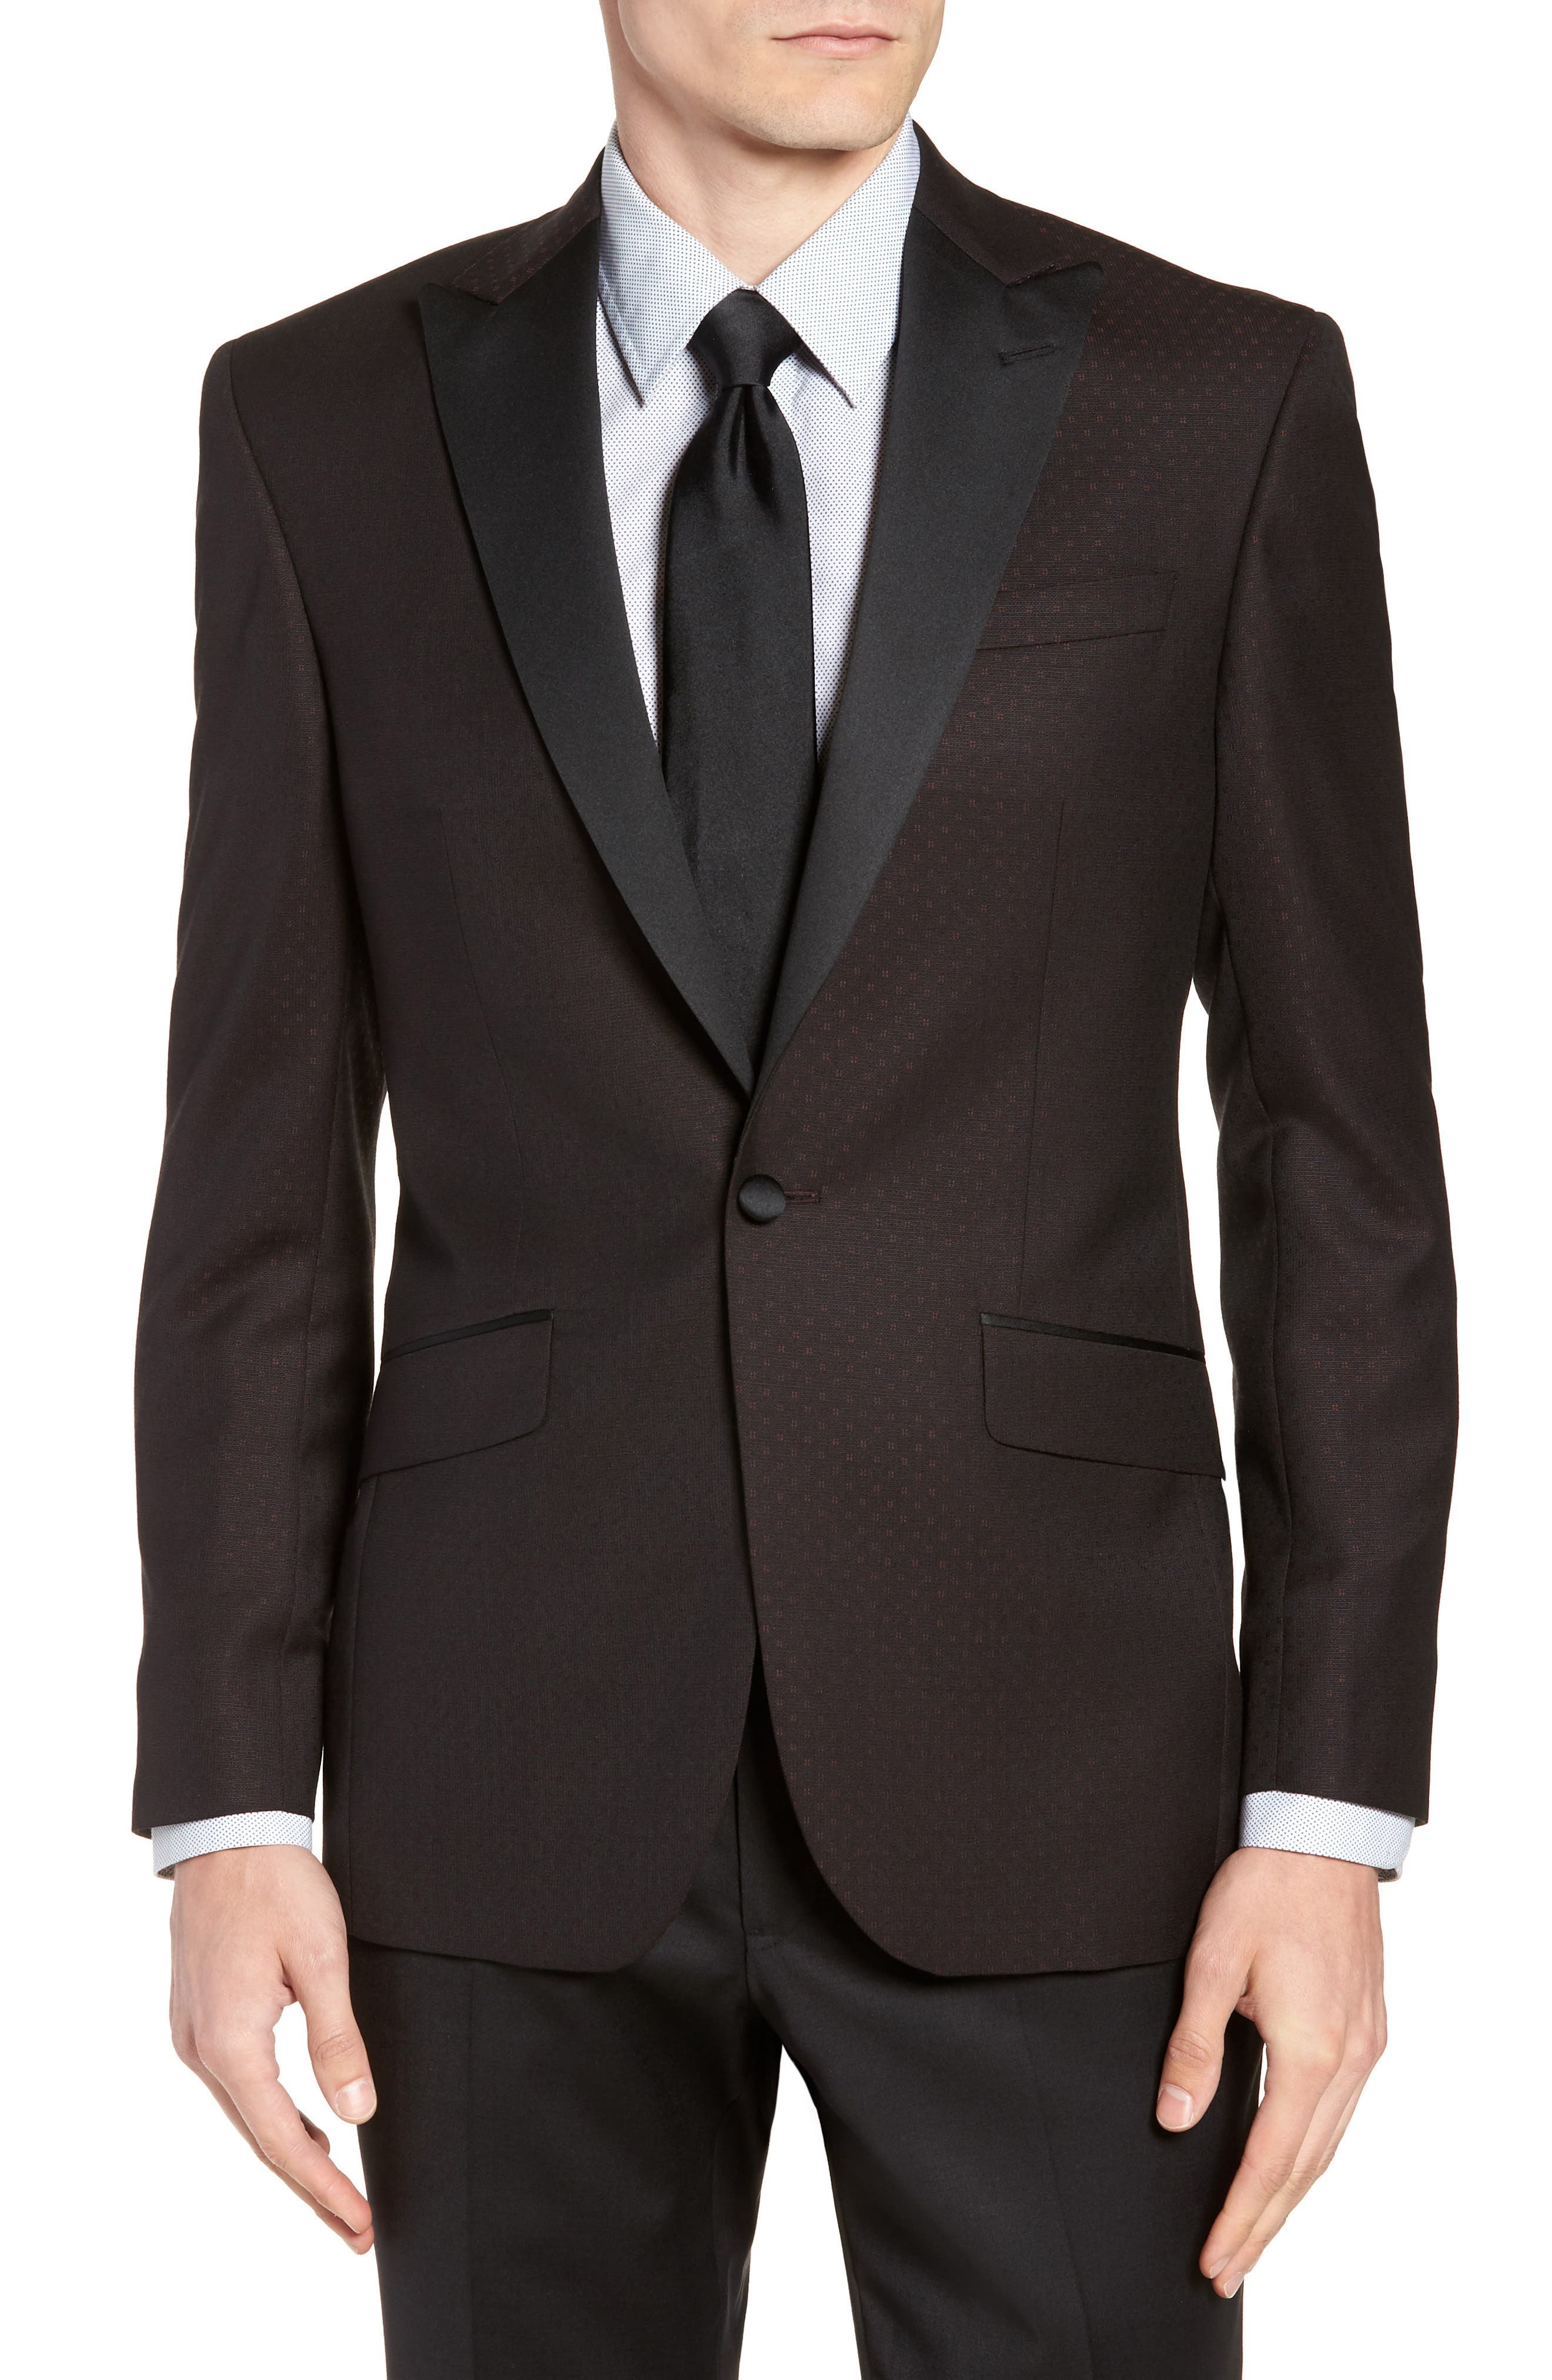 Jules Trim Fit Wool Dinner Jacket,                             Main thumbnail 1, color,                             BURGUNDY